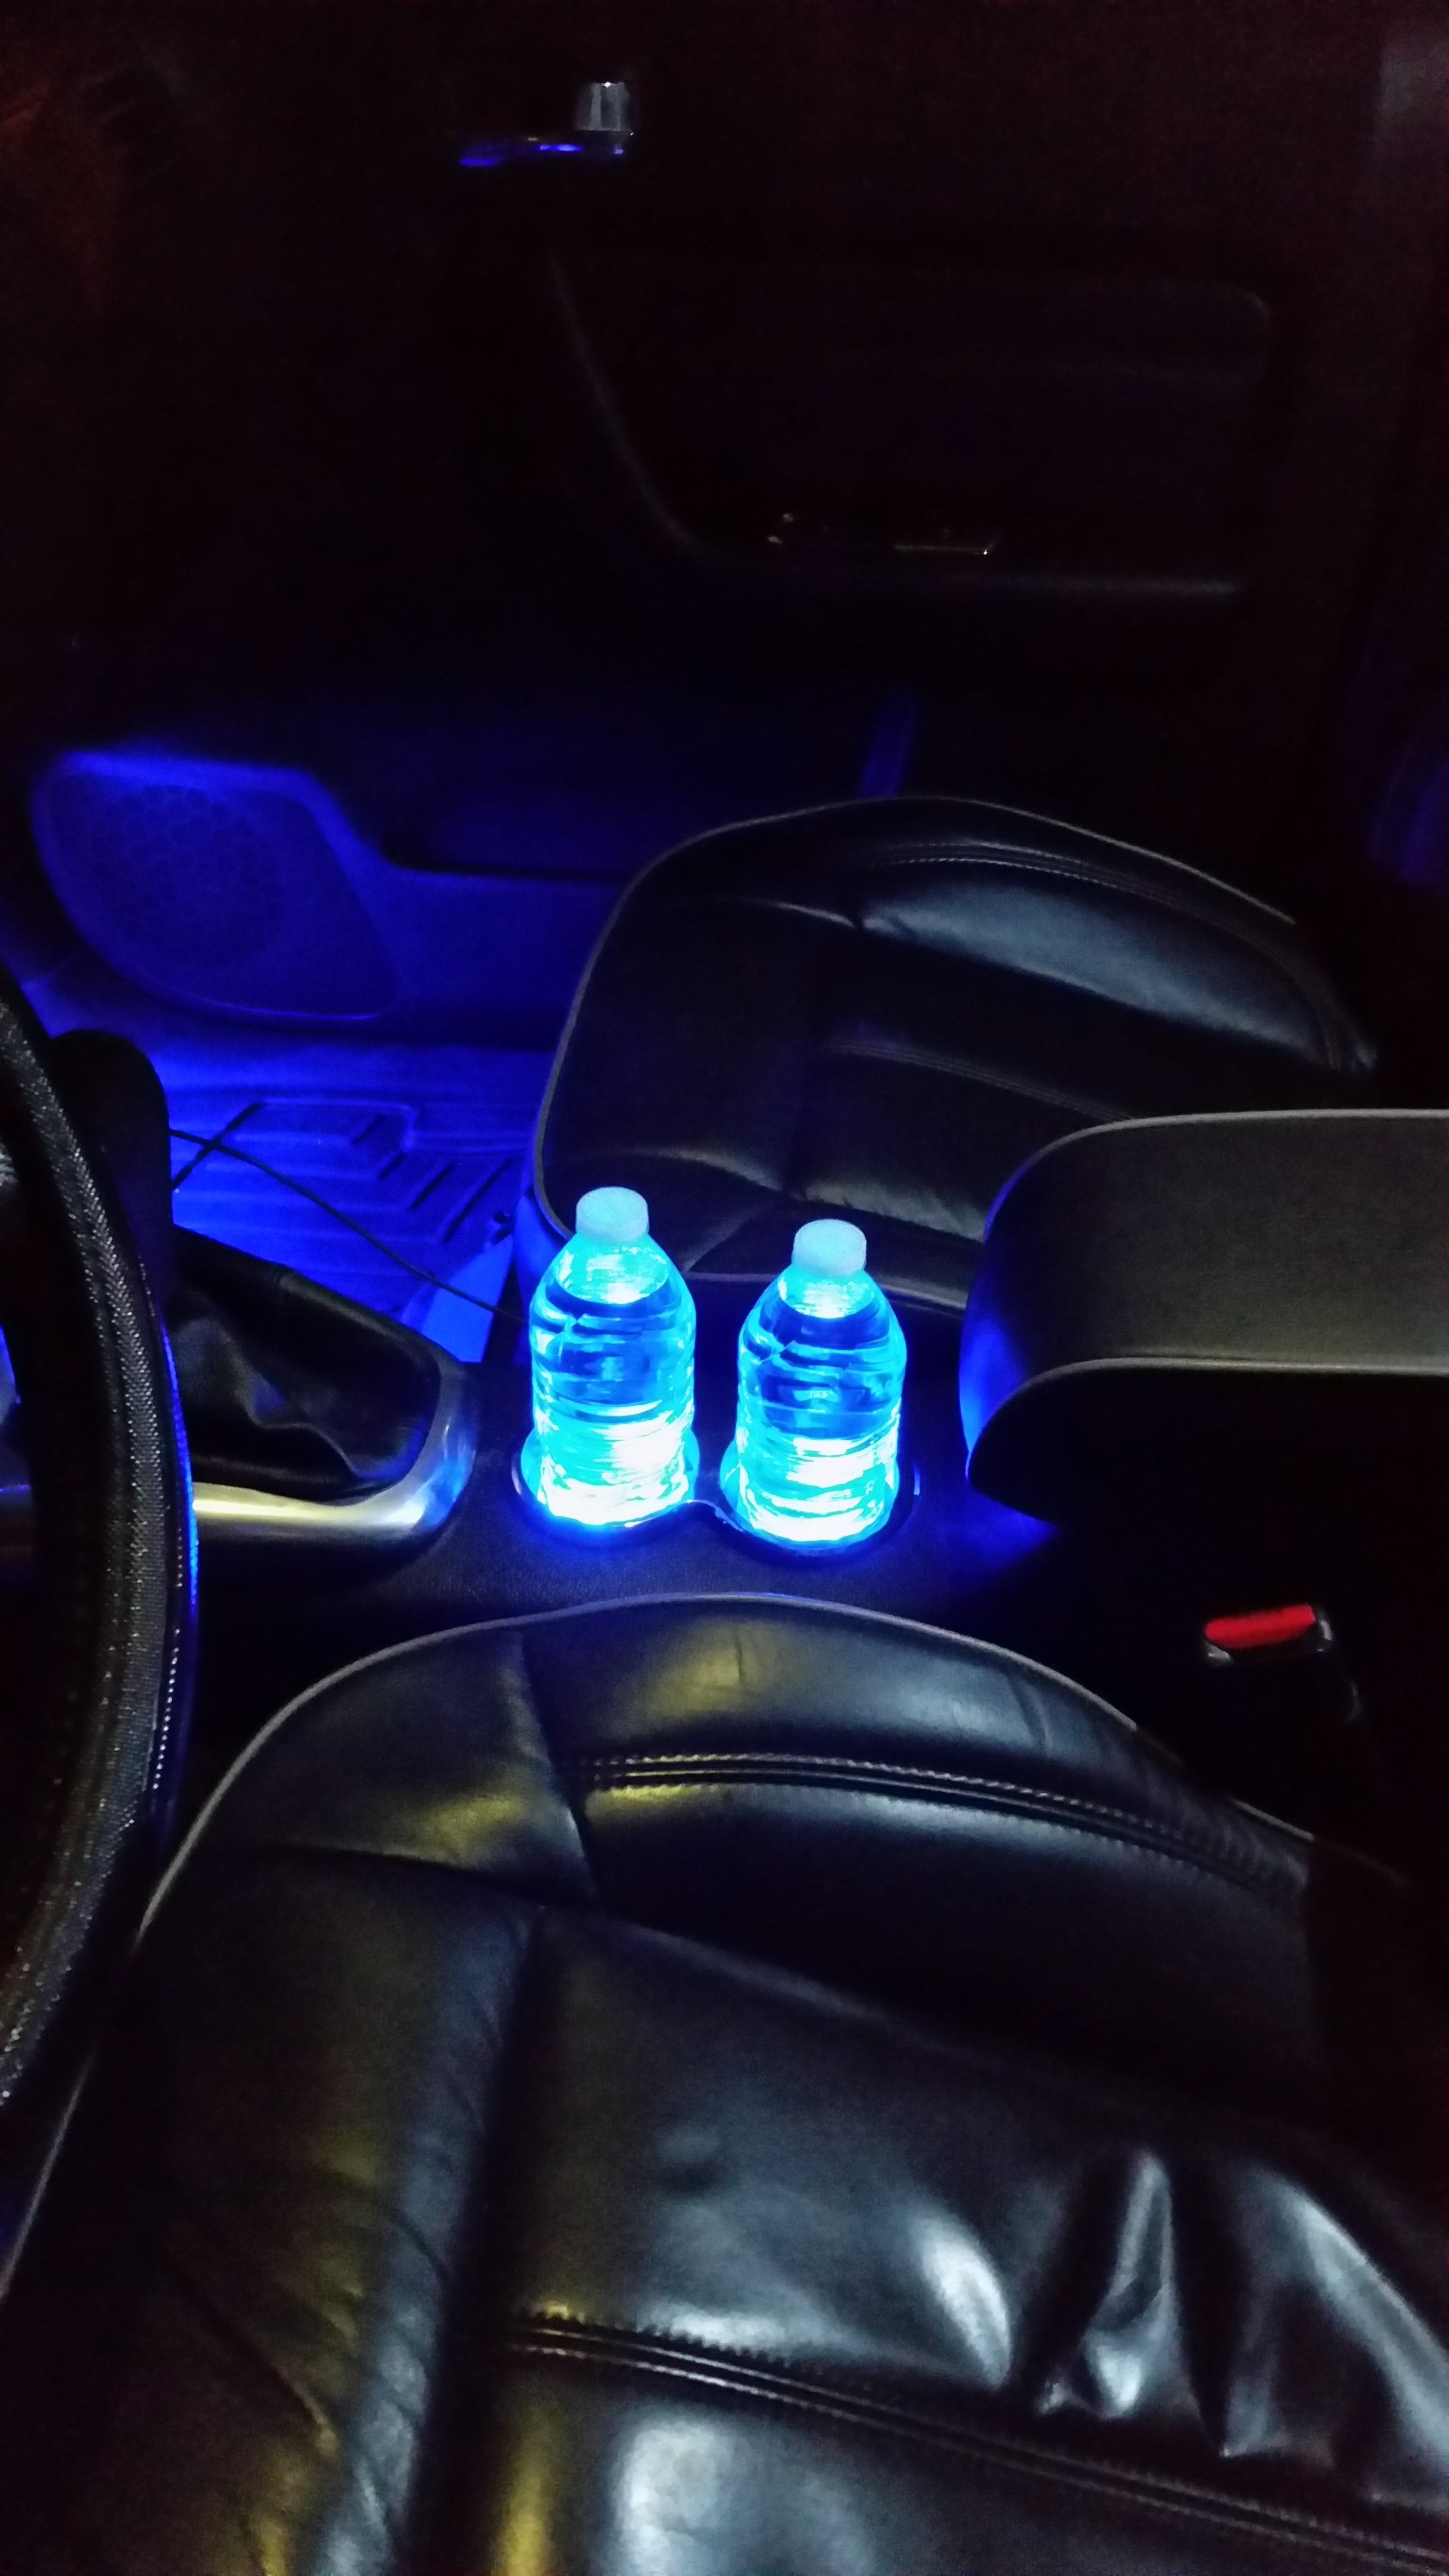 Closeup Picture Of The Blue Led Cupholder Lighting I Just